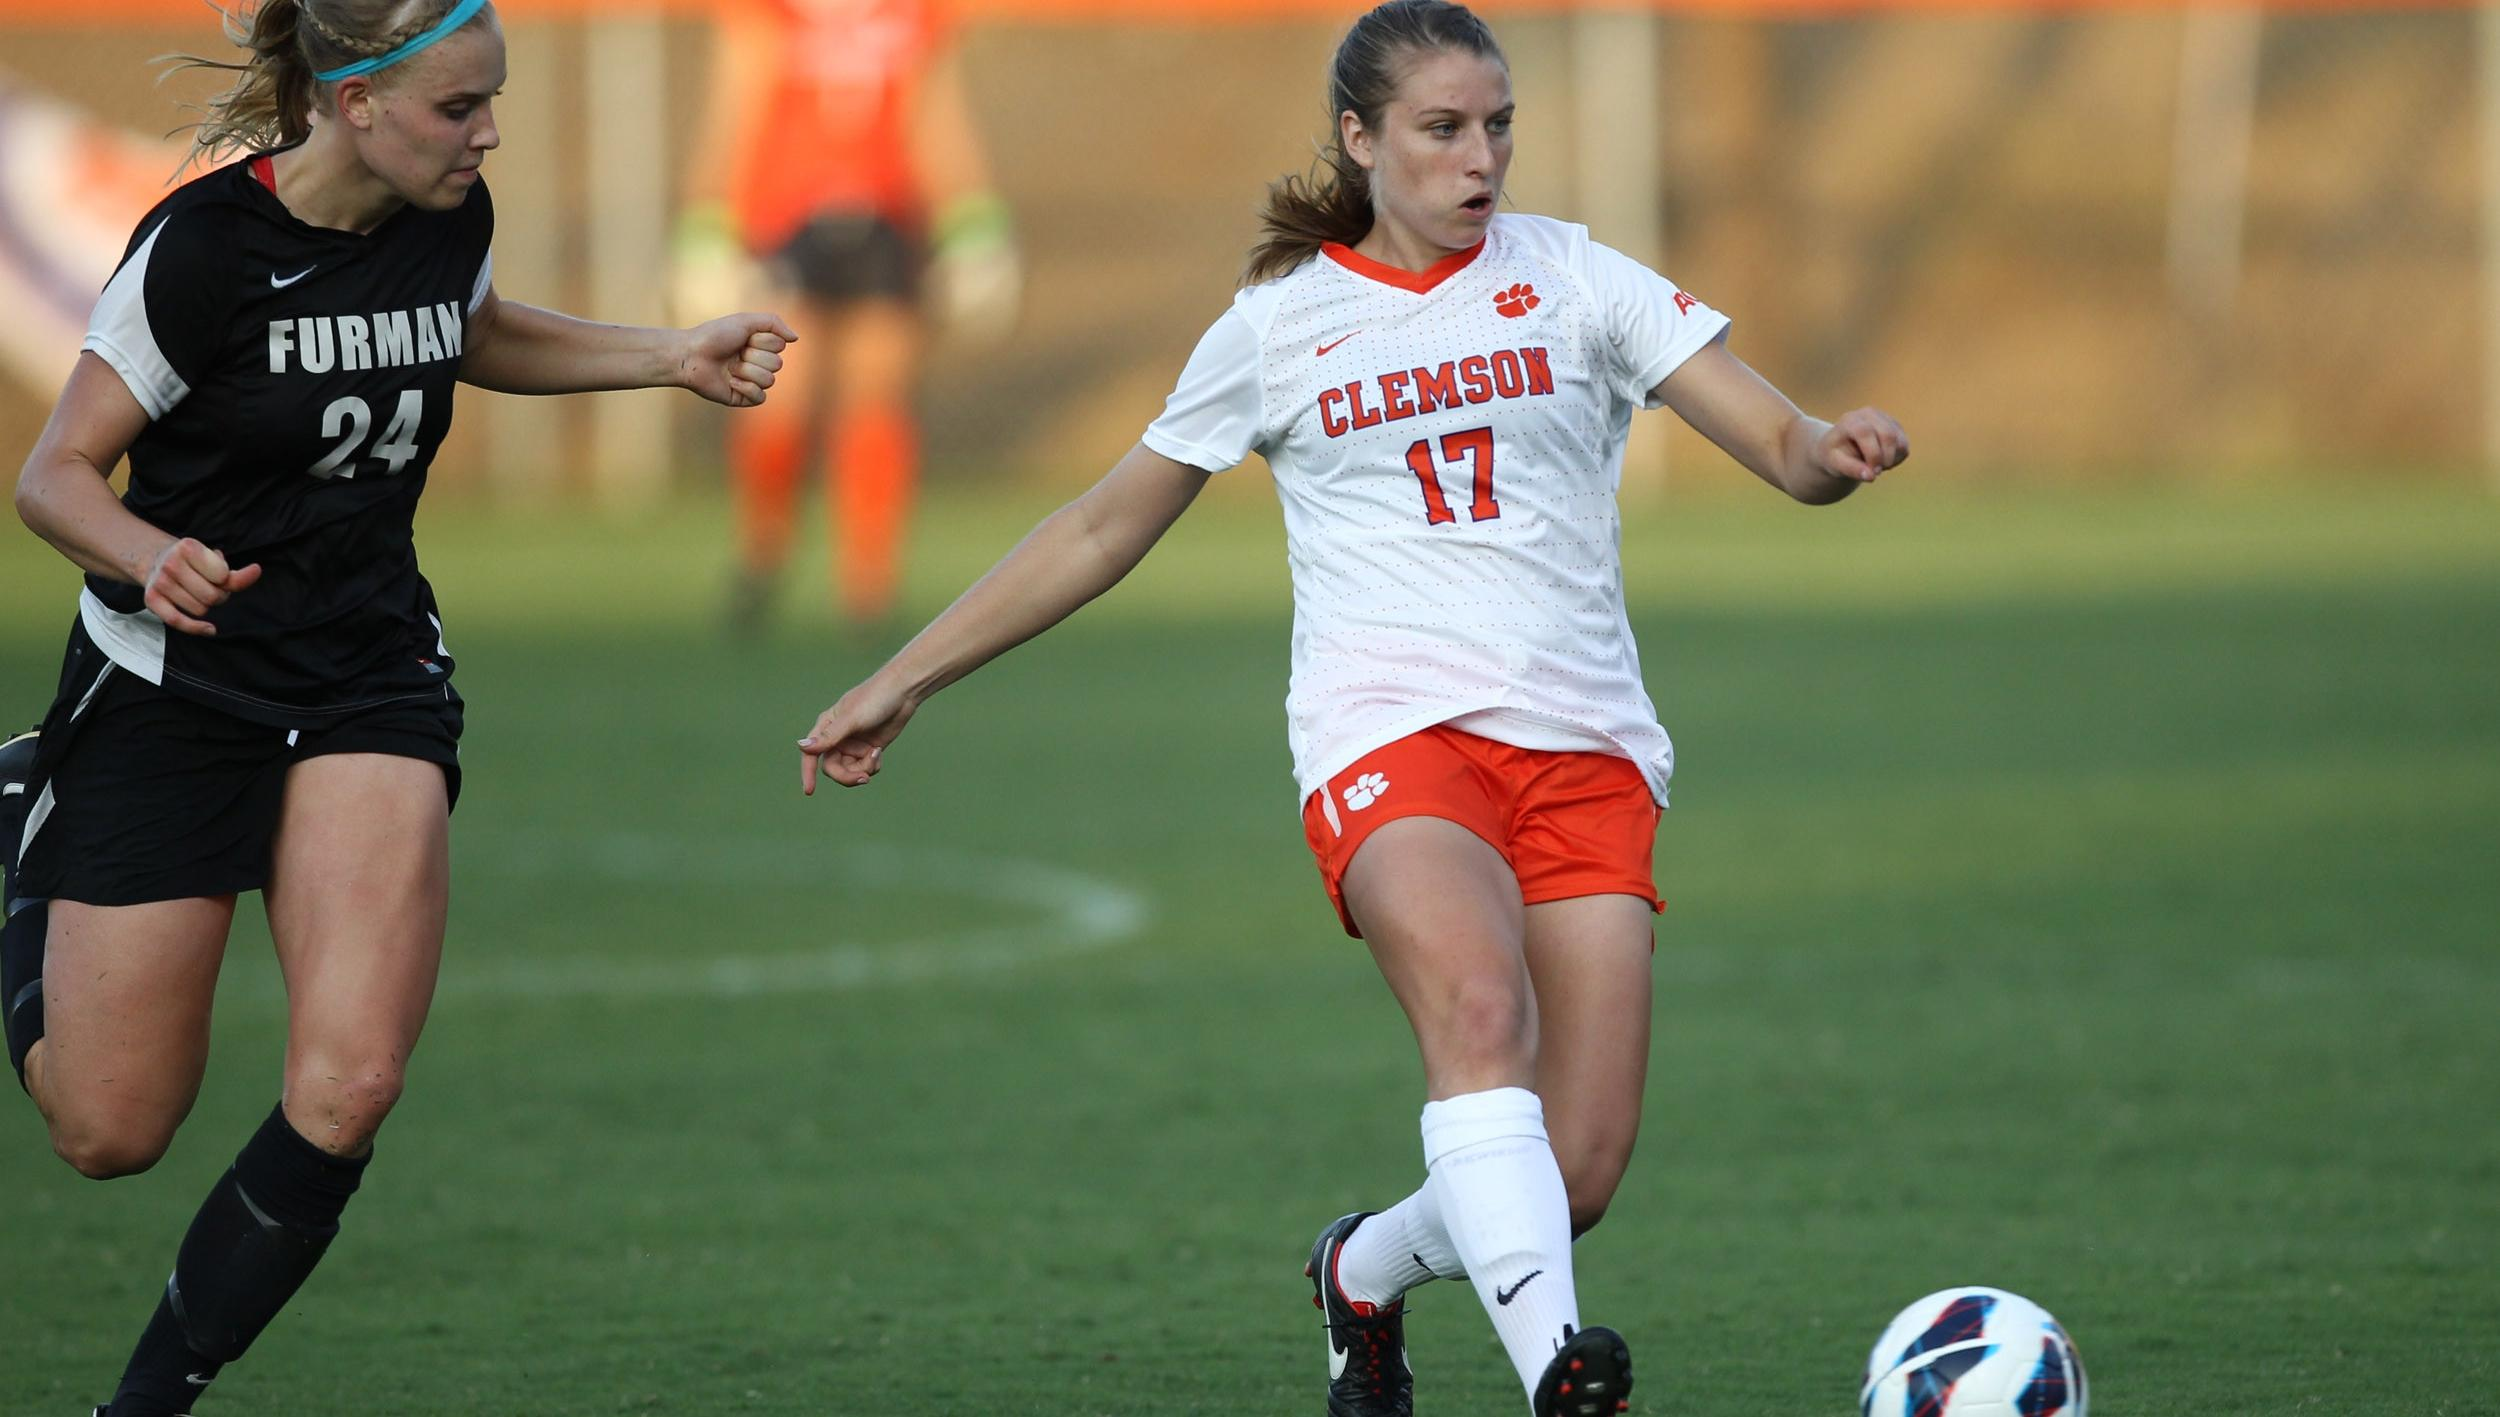 Clemson Women's Soccer to Play Host to #11 South Carolina, Davidson this Weekend